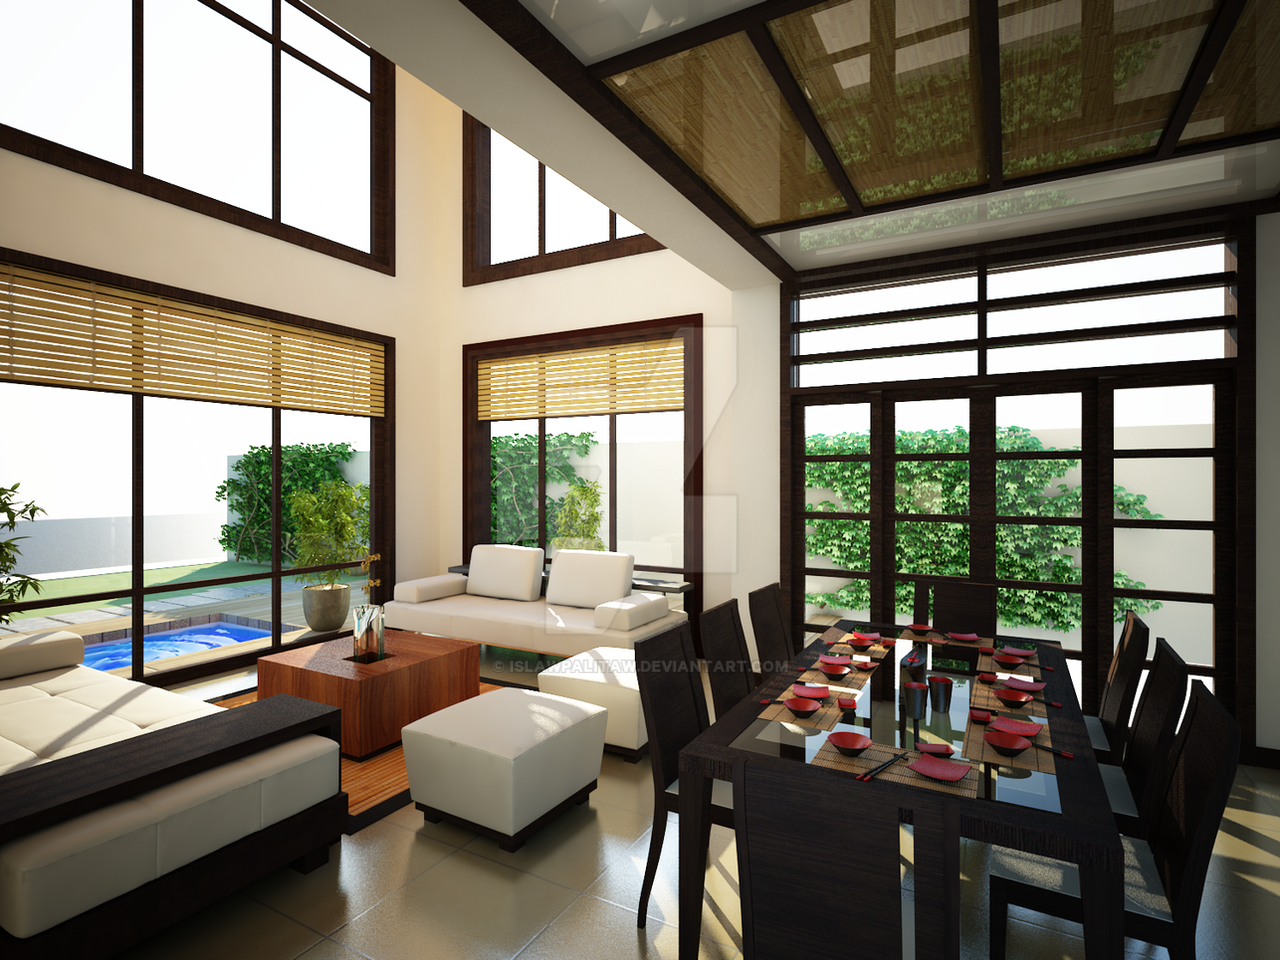 Japanese decor living room - Japanese Inspired Living Room By Islawpalitaw On Deviantart Superb